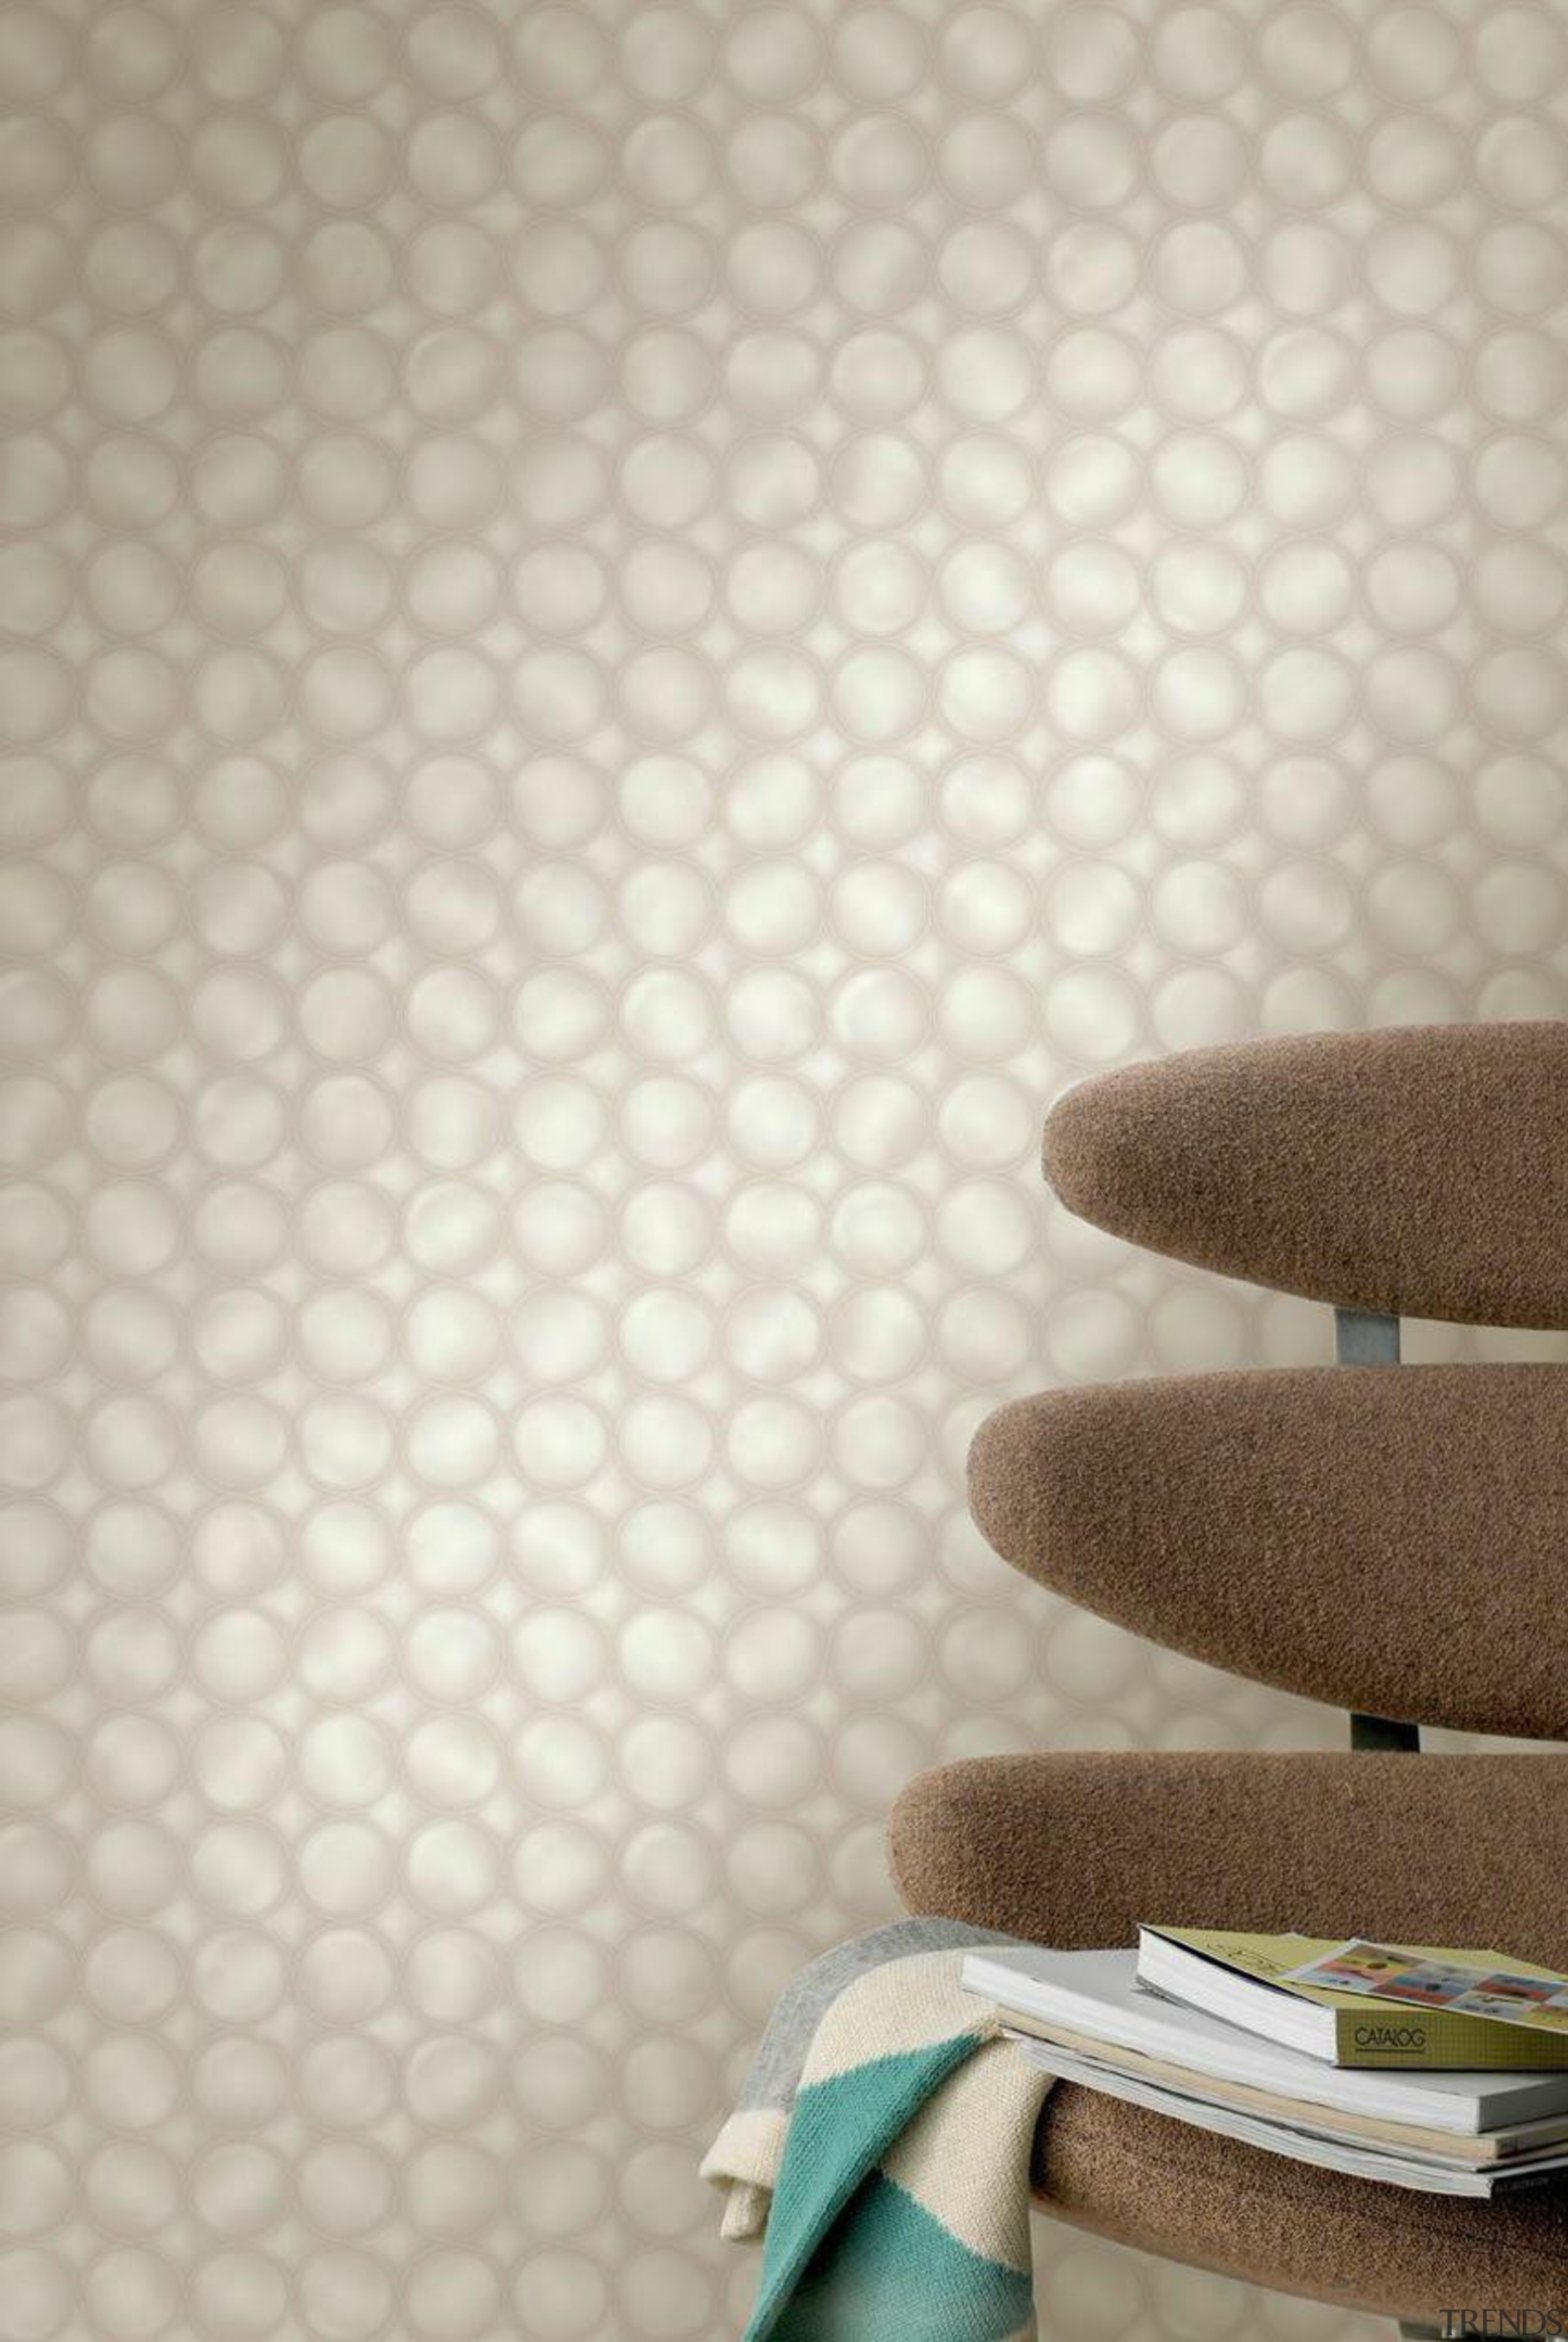 The Sky Lounge 2016 collection from the Rasch floor, flooring, pattern, product, wall, wallpaper, gray